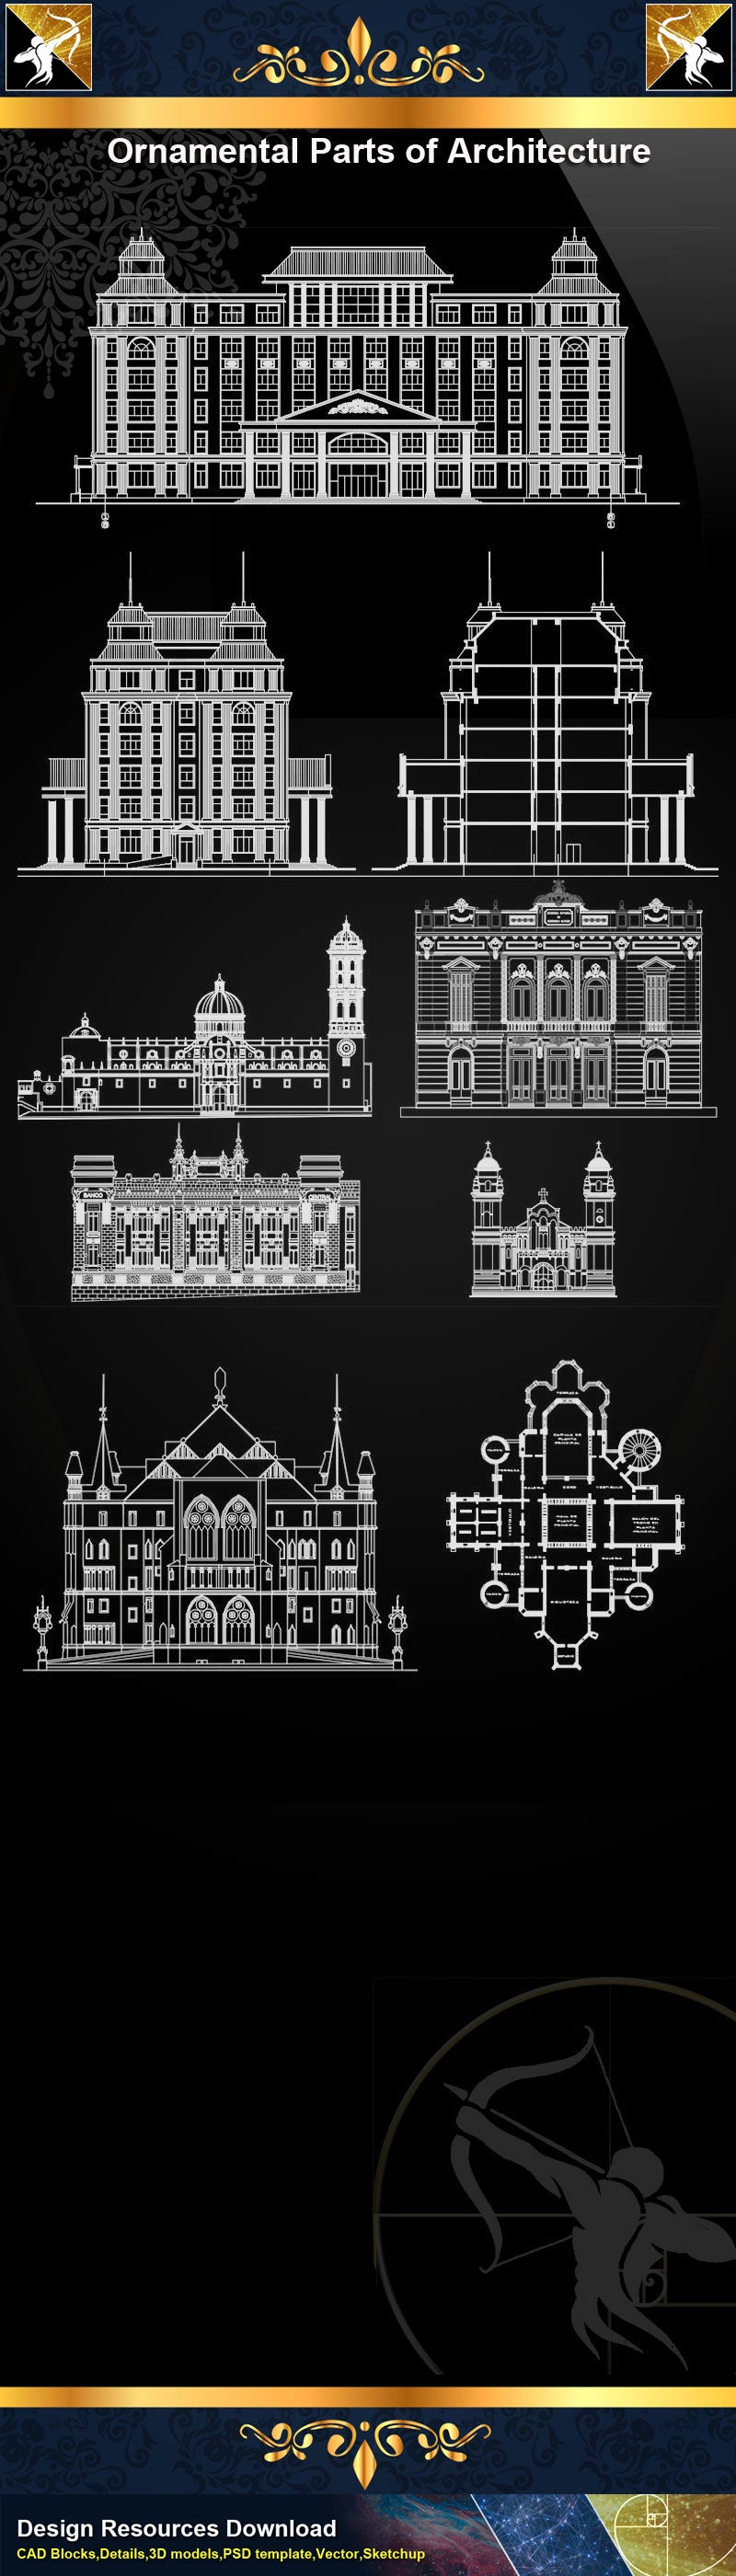 ★Ornamental Parts of Architecture 4